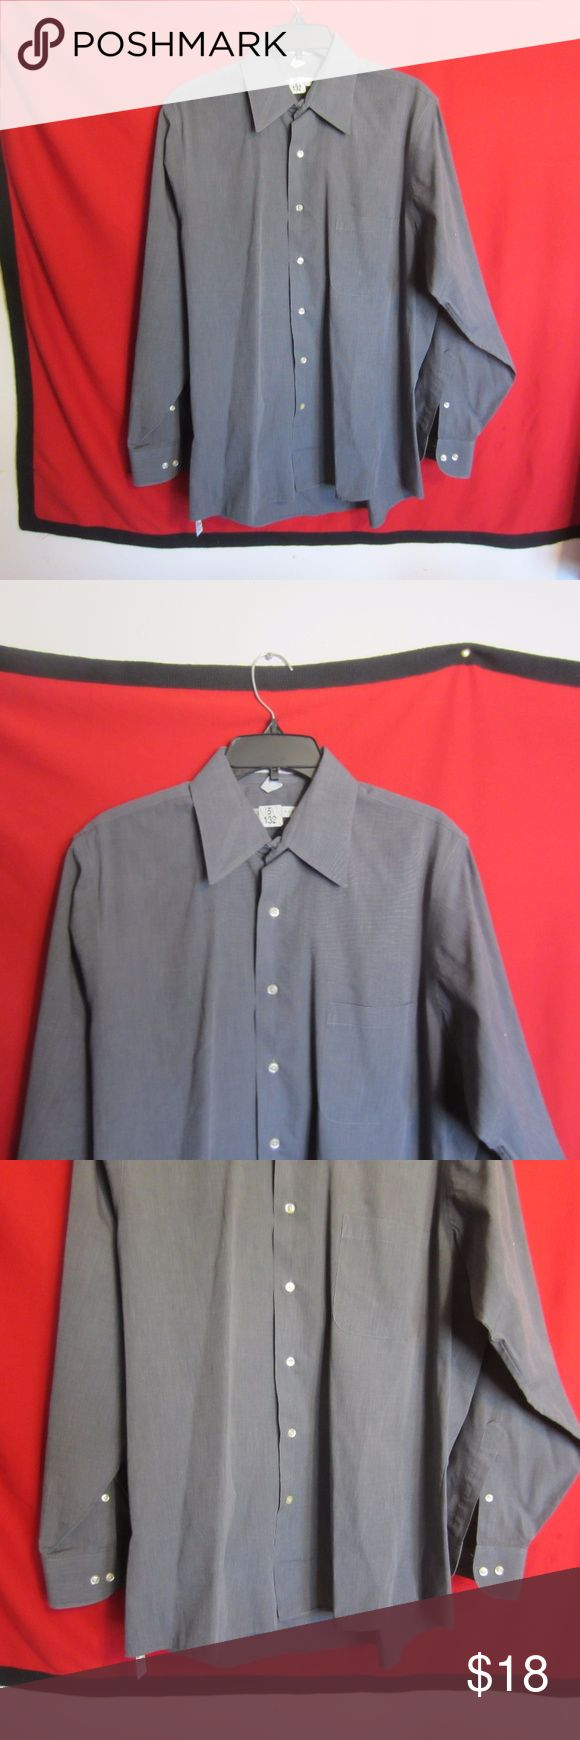 Geoffrey Beene Mens Gray Dress Shirt Size 16 34/35 This listing is for a great looking gently used Cotton Blend Geoffrey Beene Mens Gray Dress Shirt Size 16 34/35 Wrinkle Free. In great condition. No holes or stains. Ready for use. Geoffrey Beene Shirts Casual Button Down Shirts